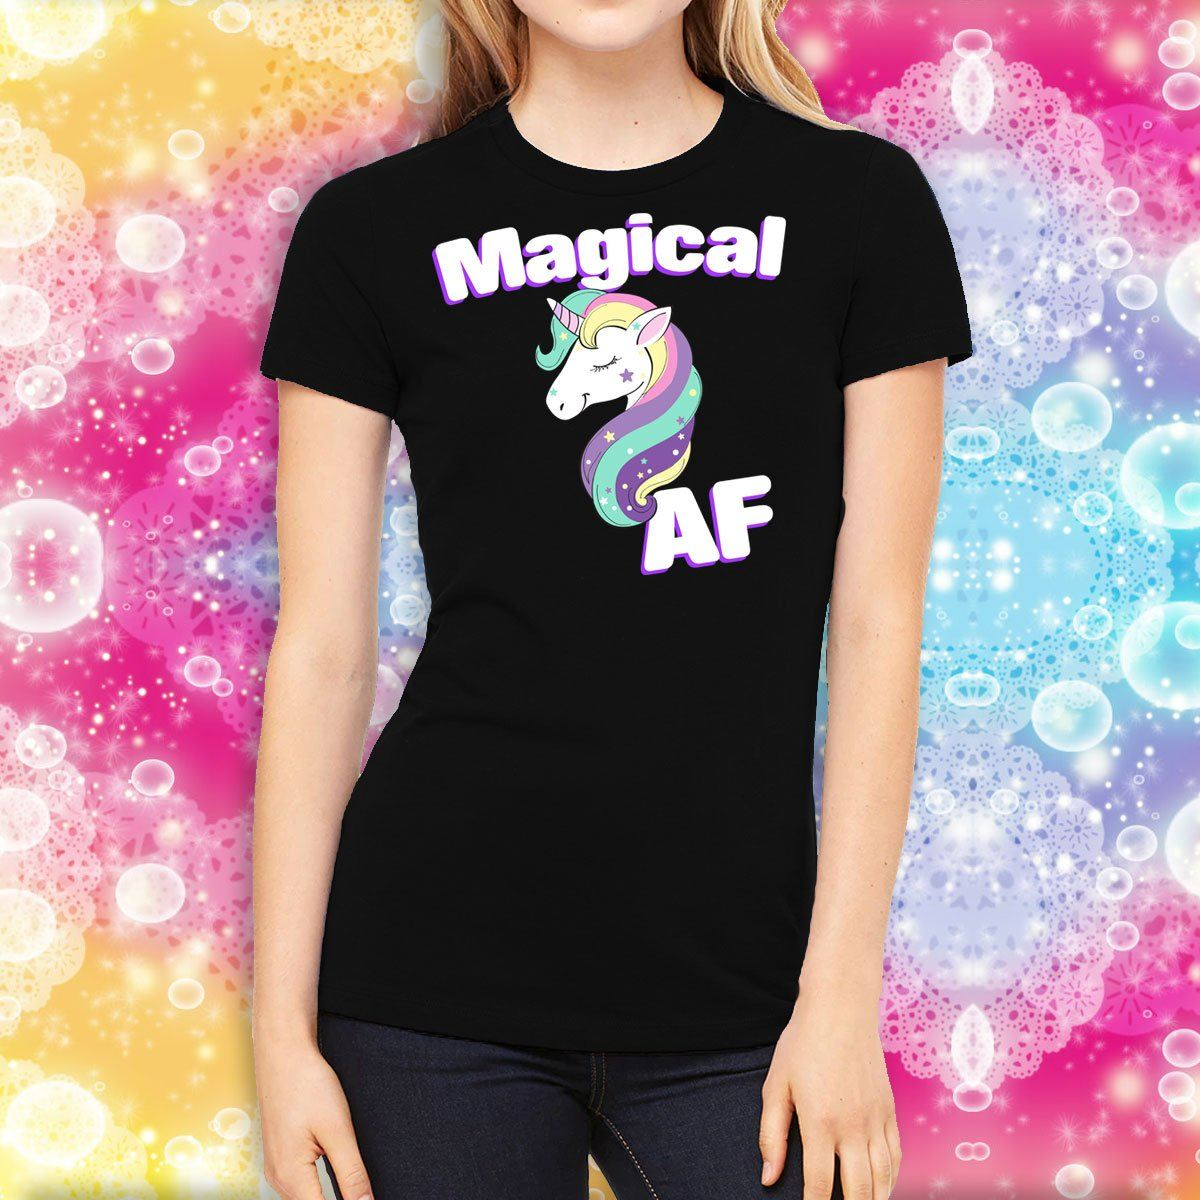 Magical AF Ladies' T-Shirt Apparel